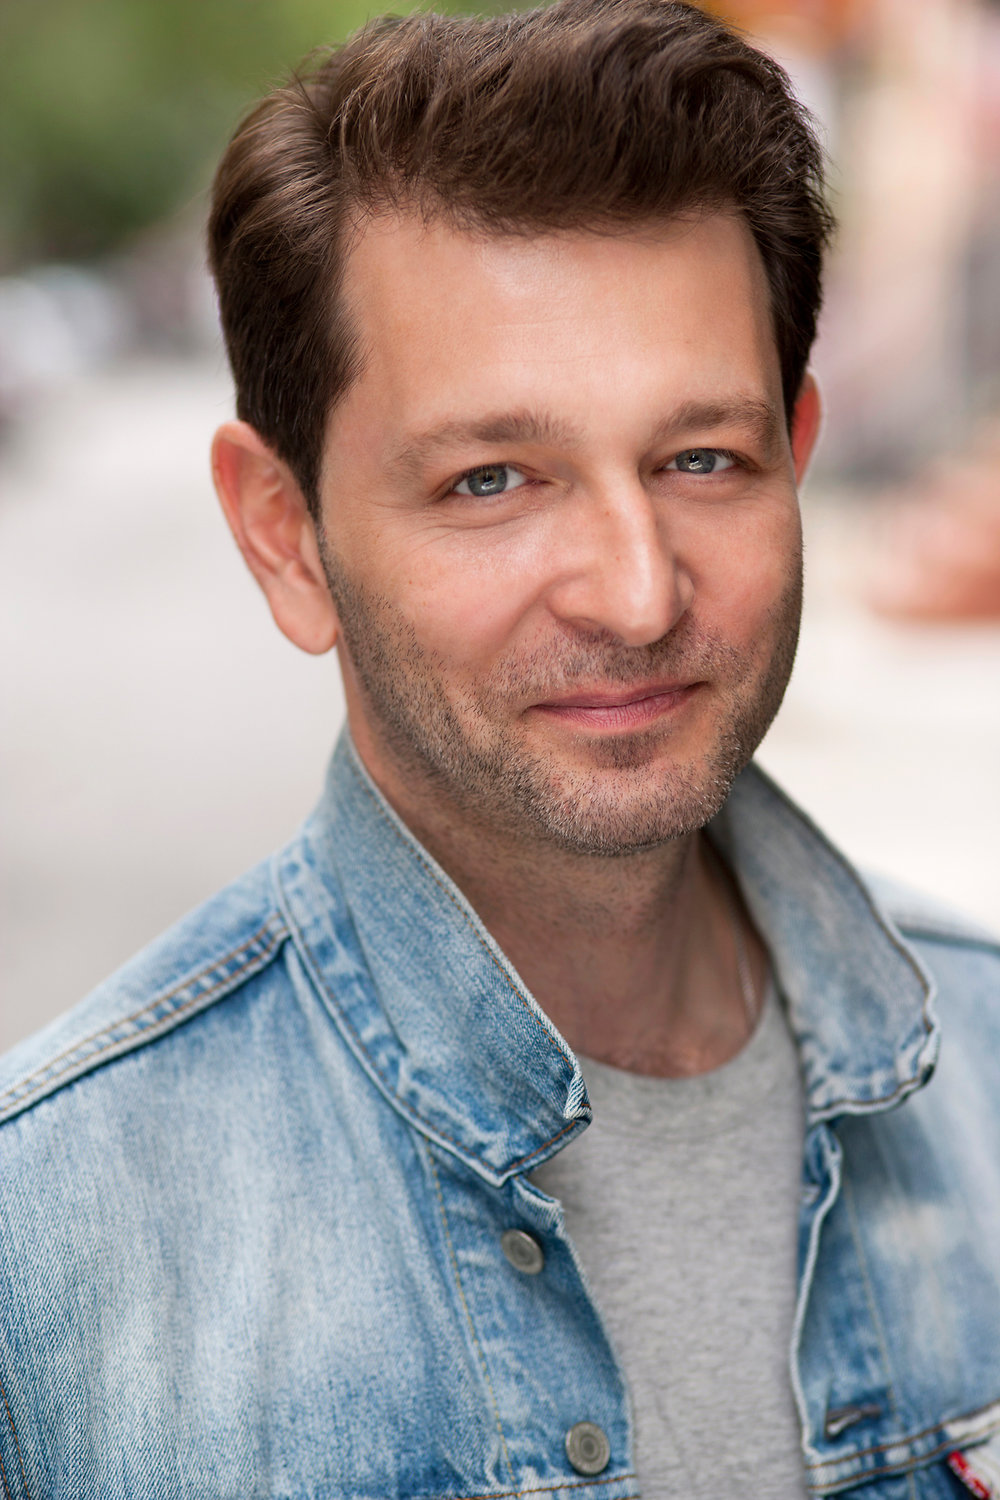 ALEXANDER SOKOVIKOV - If you missed client Alexander Sokovikov in his major recurring guest role as 'Alexei Morozov' on this past season of FX's THE AMERICANS, don't stress! You can now stream the entire season of the hit series on FXNow.